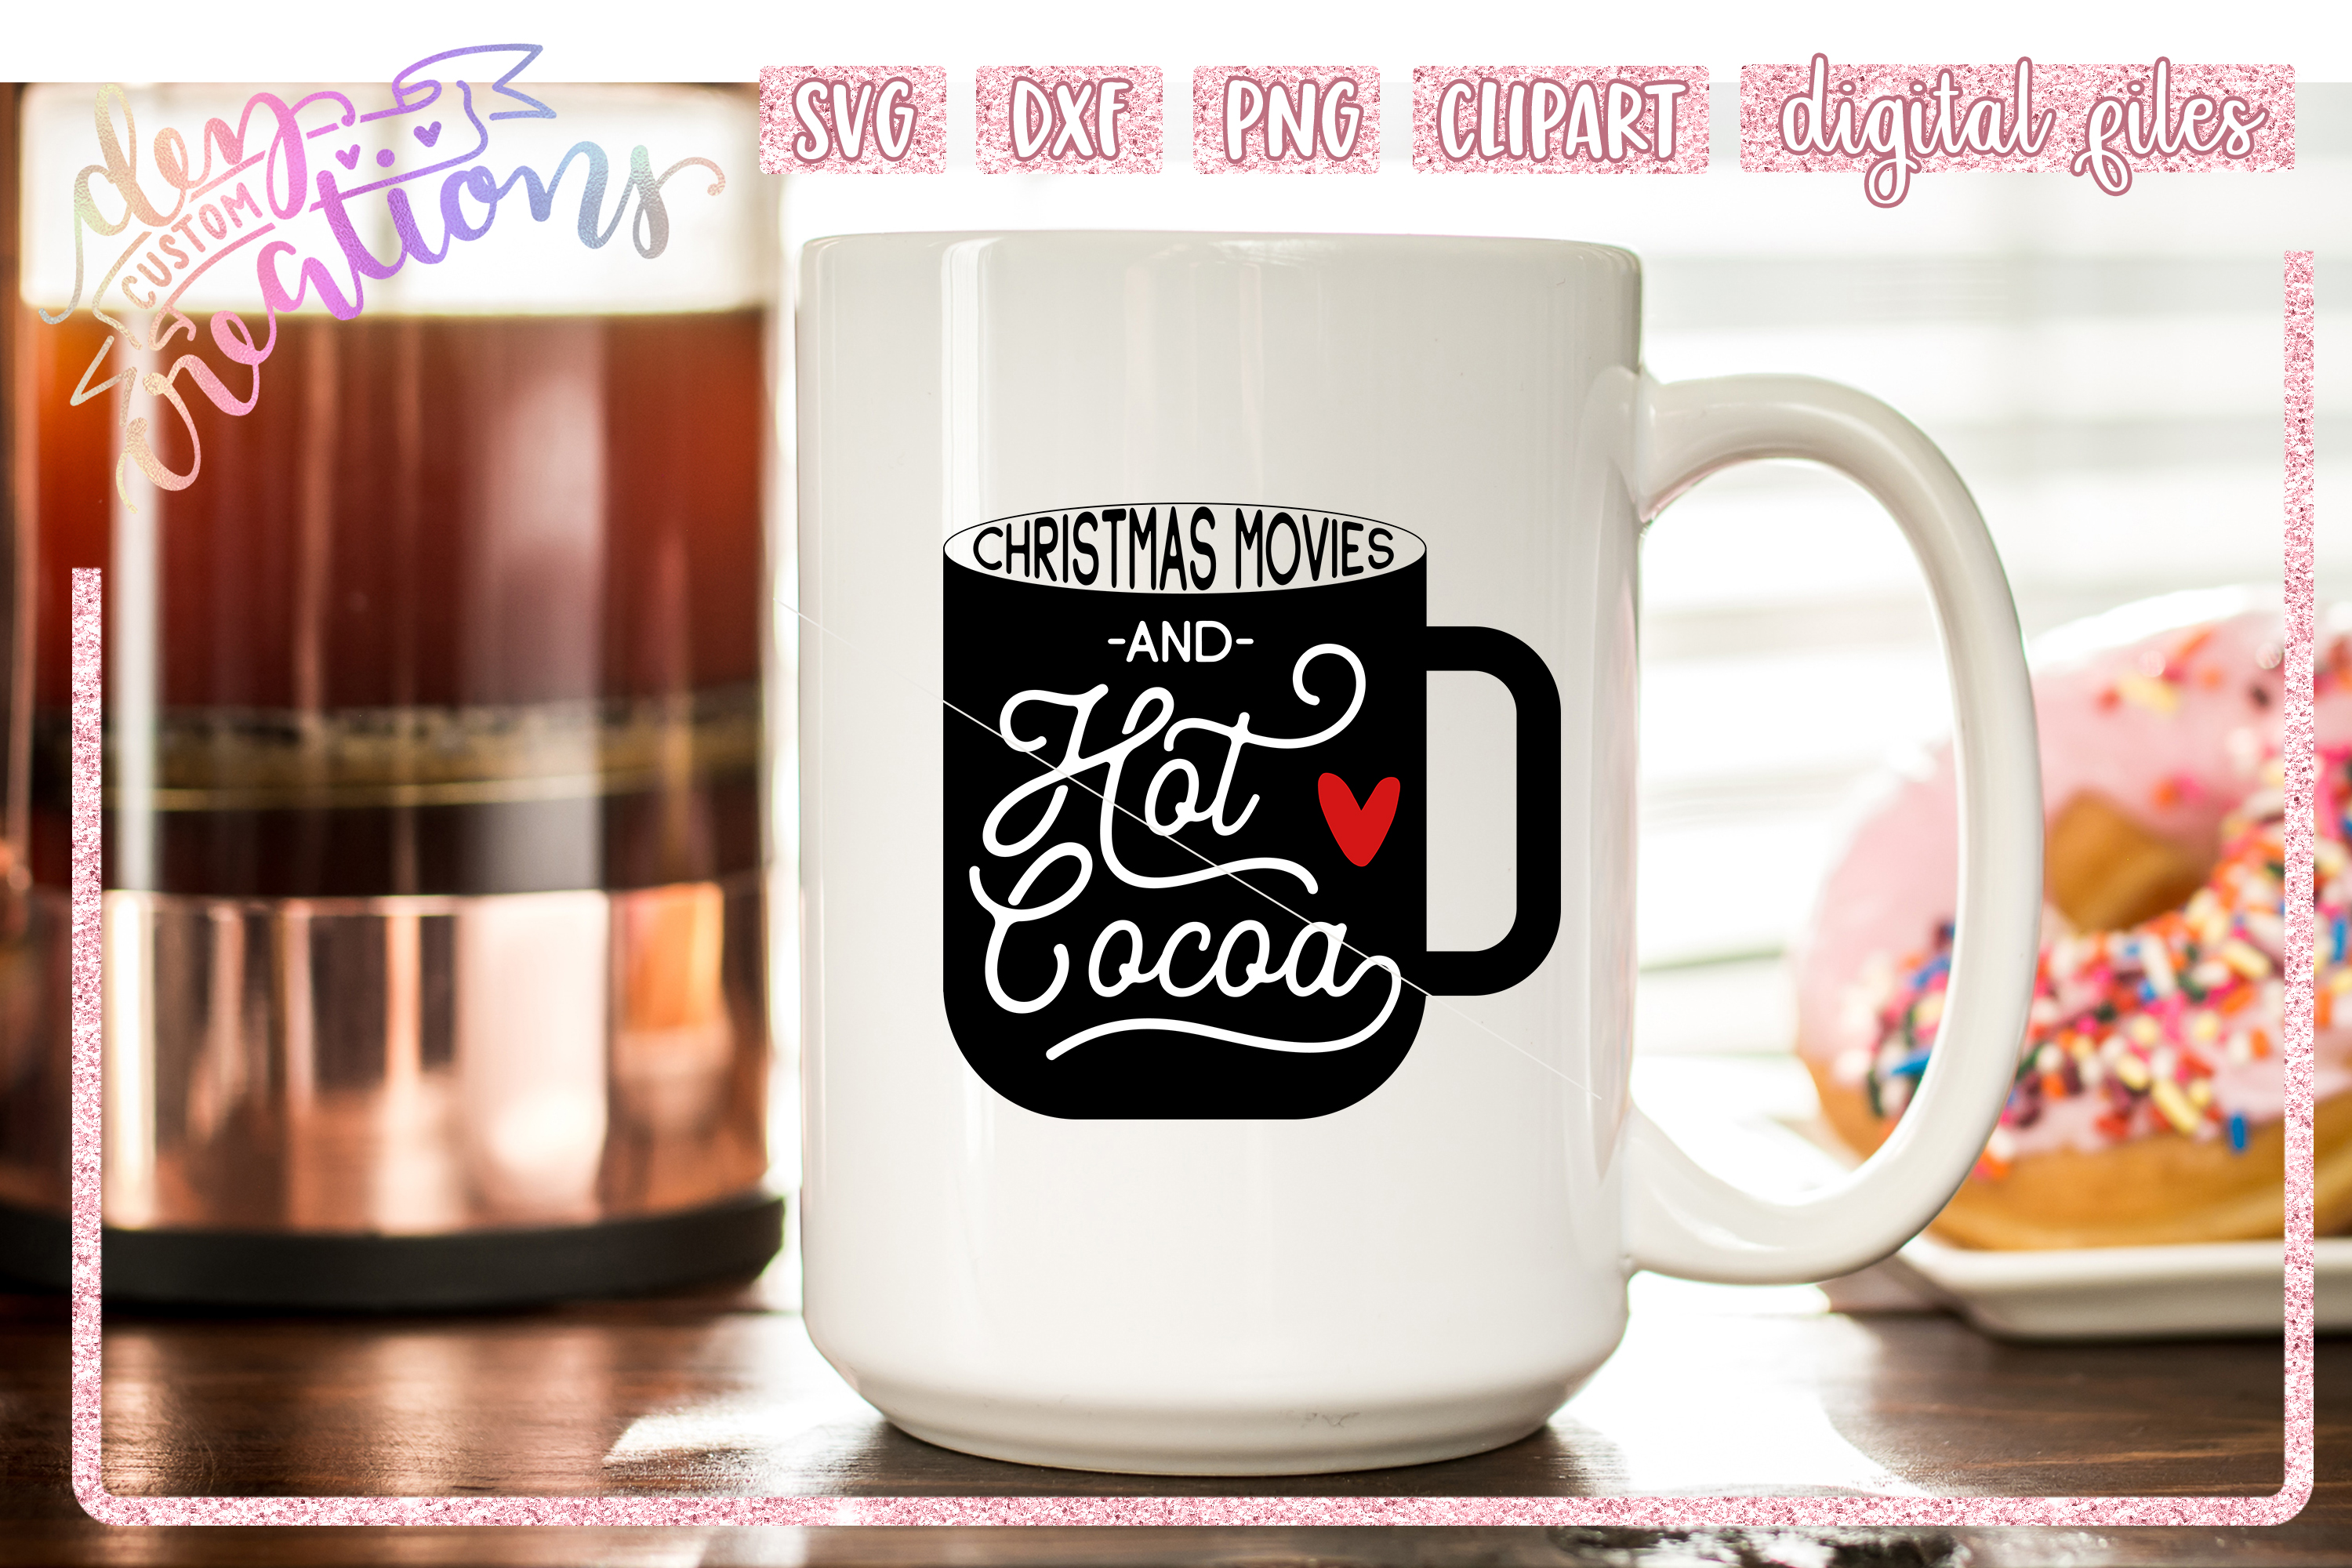 Christmas Movies & Hot Cocoa - Wine - SVG DXF PNG files example image 3